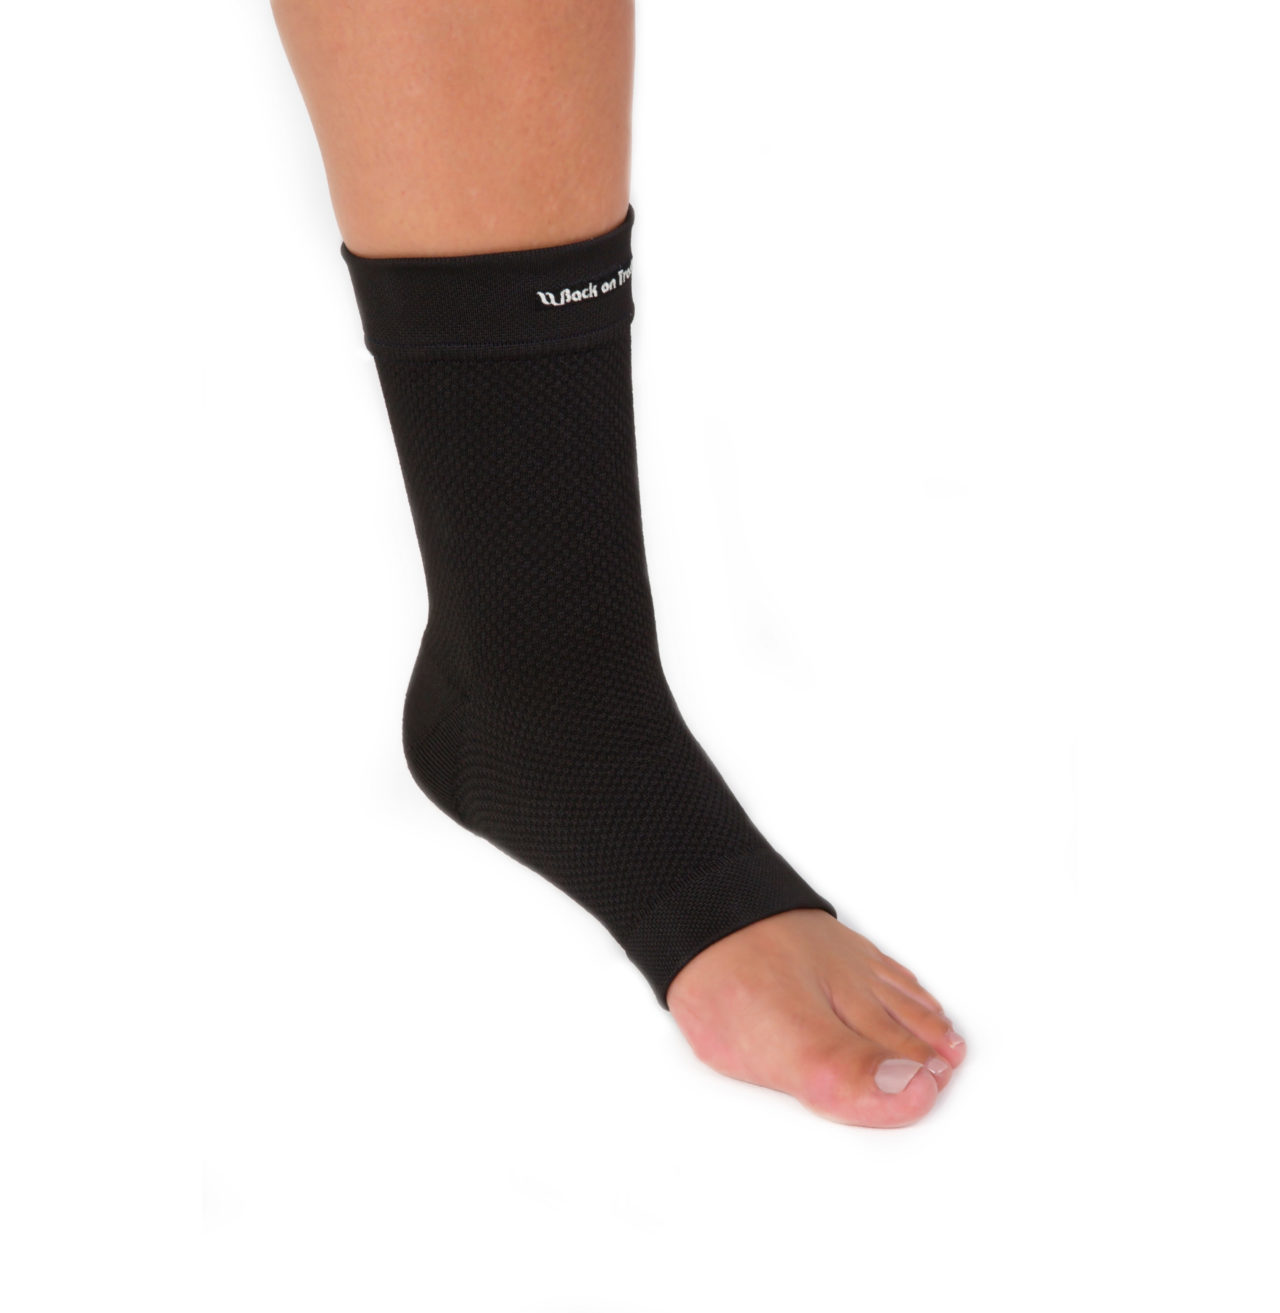 87e6511e6d New Physio Ankle Brace $31.00 The Back on Track + Physio Ankle ...